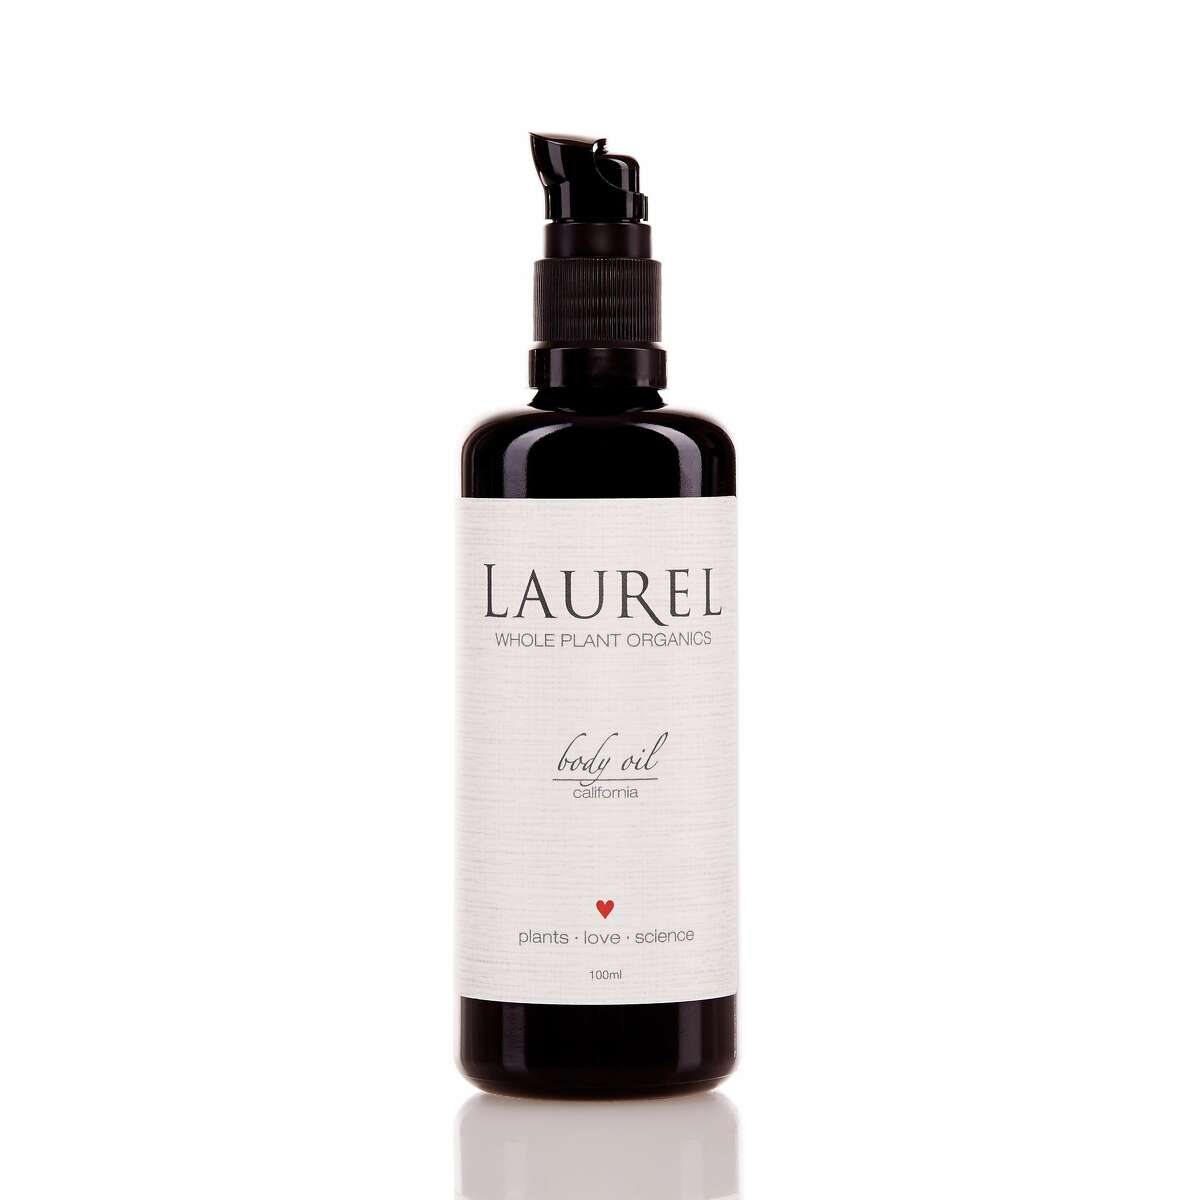 Laurel Shaffer of Laurel Whole Plant Organics formulates her skin and body care products with crystals to help customers connect with their own bodies and sense of themselves. Pictured is the California Body Oil.